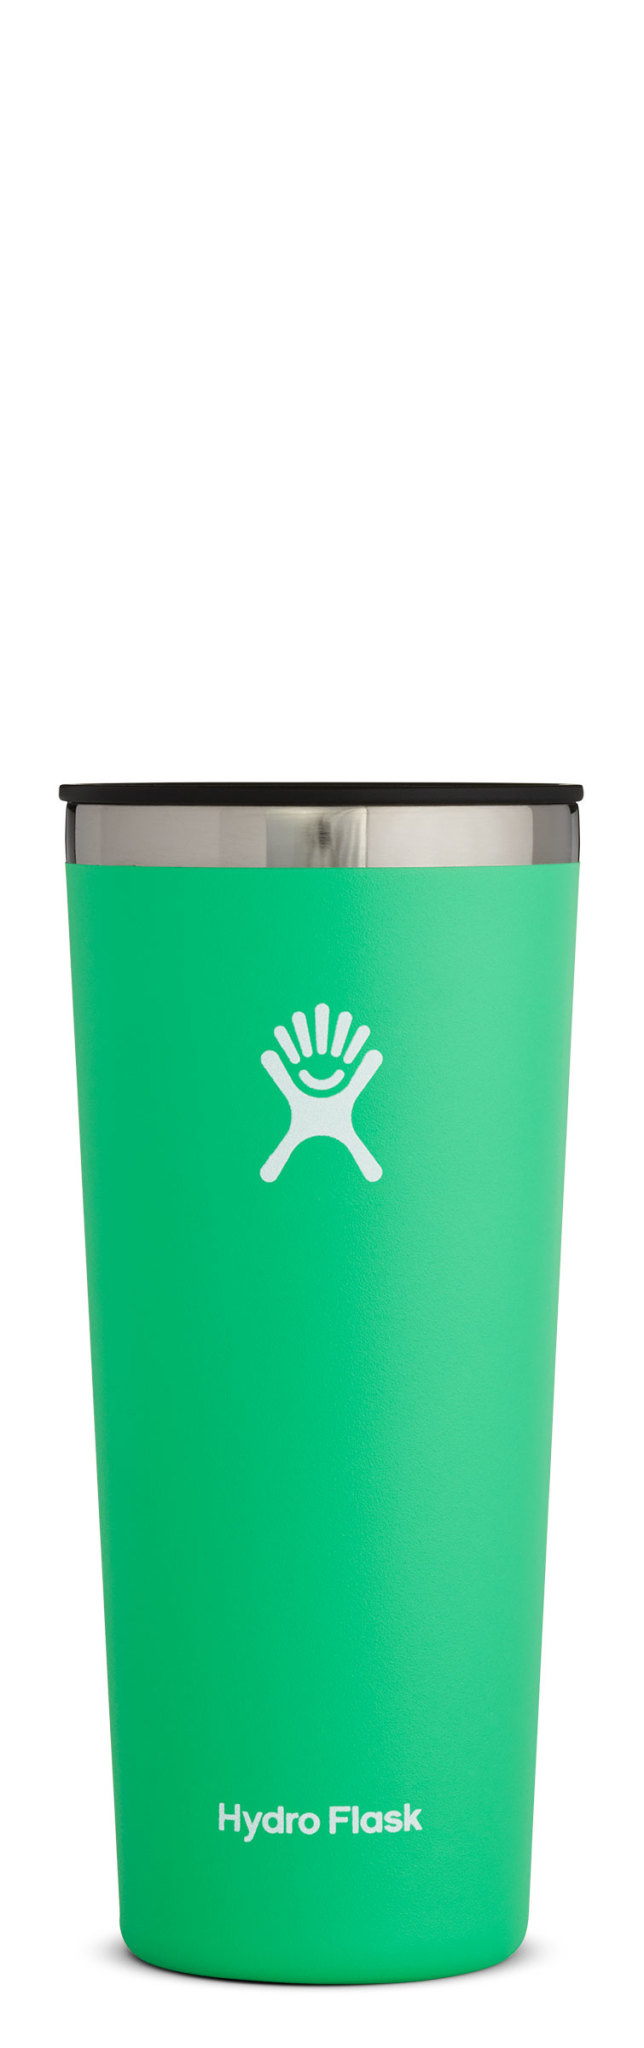 Hydro Flask 22oz Tumbler-5